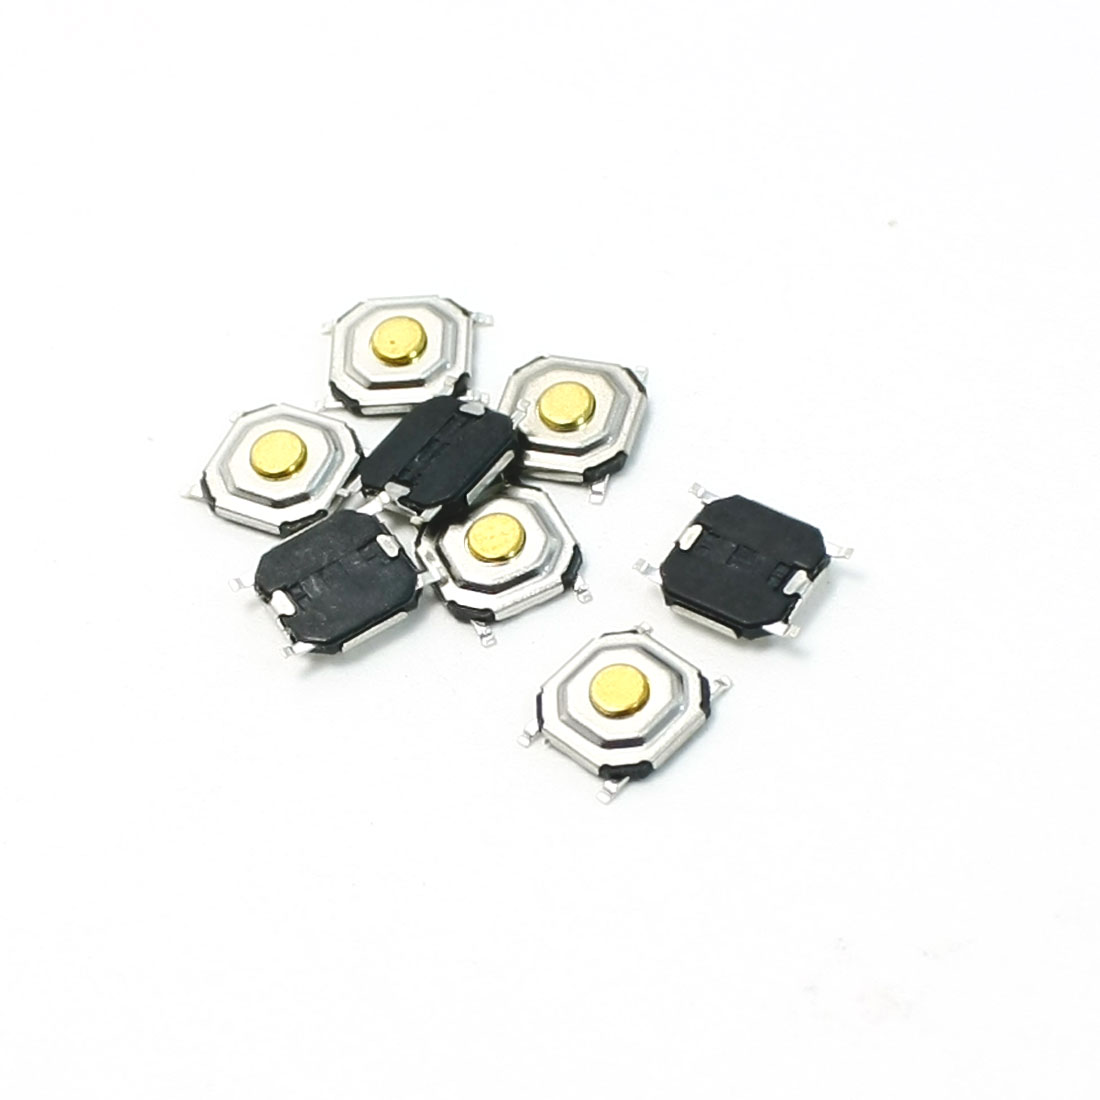 8pcs 5x5x1.5mm SMT SMD Momentary Action 4 Pin Tact Tactile Switch DC 12V 0.2A